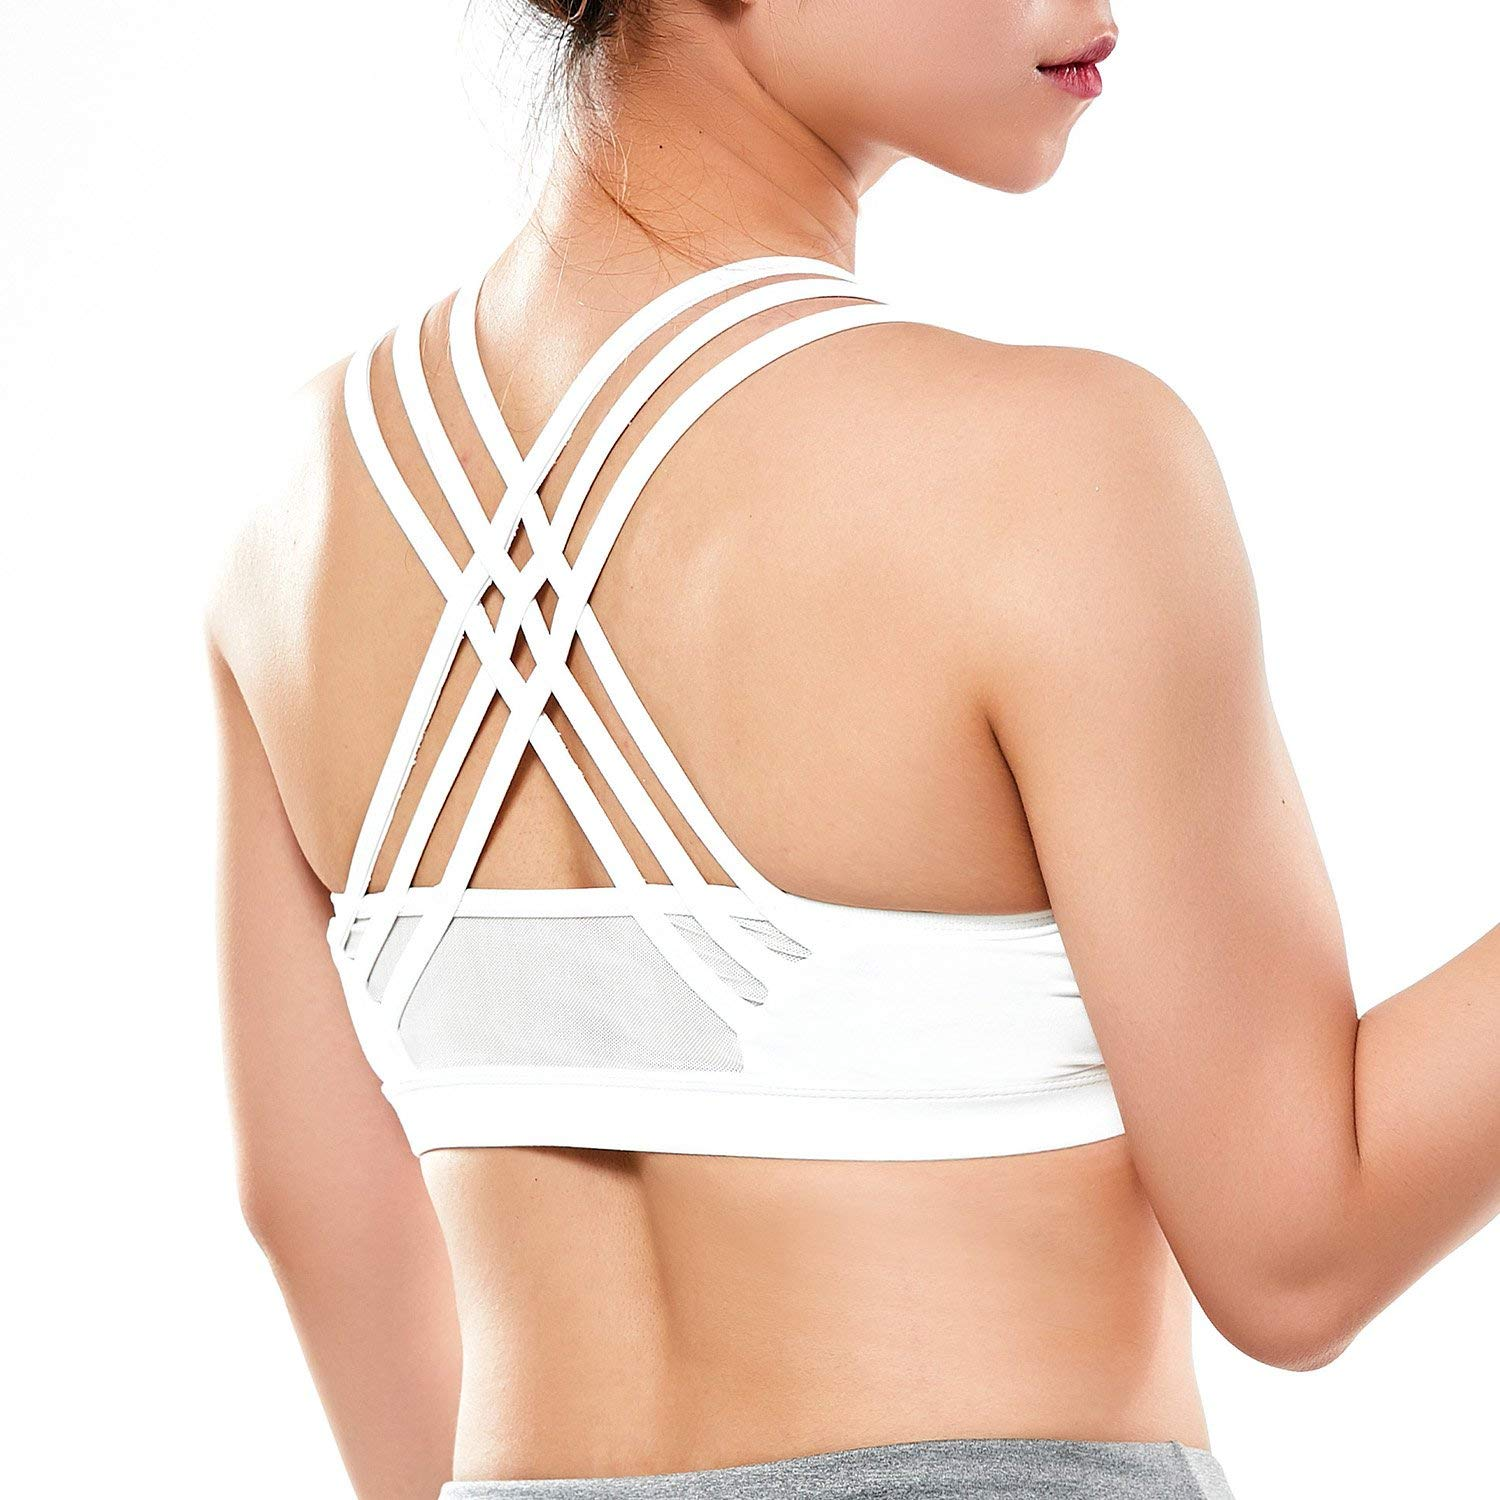 bd73f2e261569 Get Quotations · Vaburs Racerback Sport Bras with High Impact Support